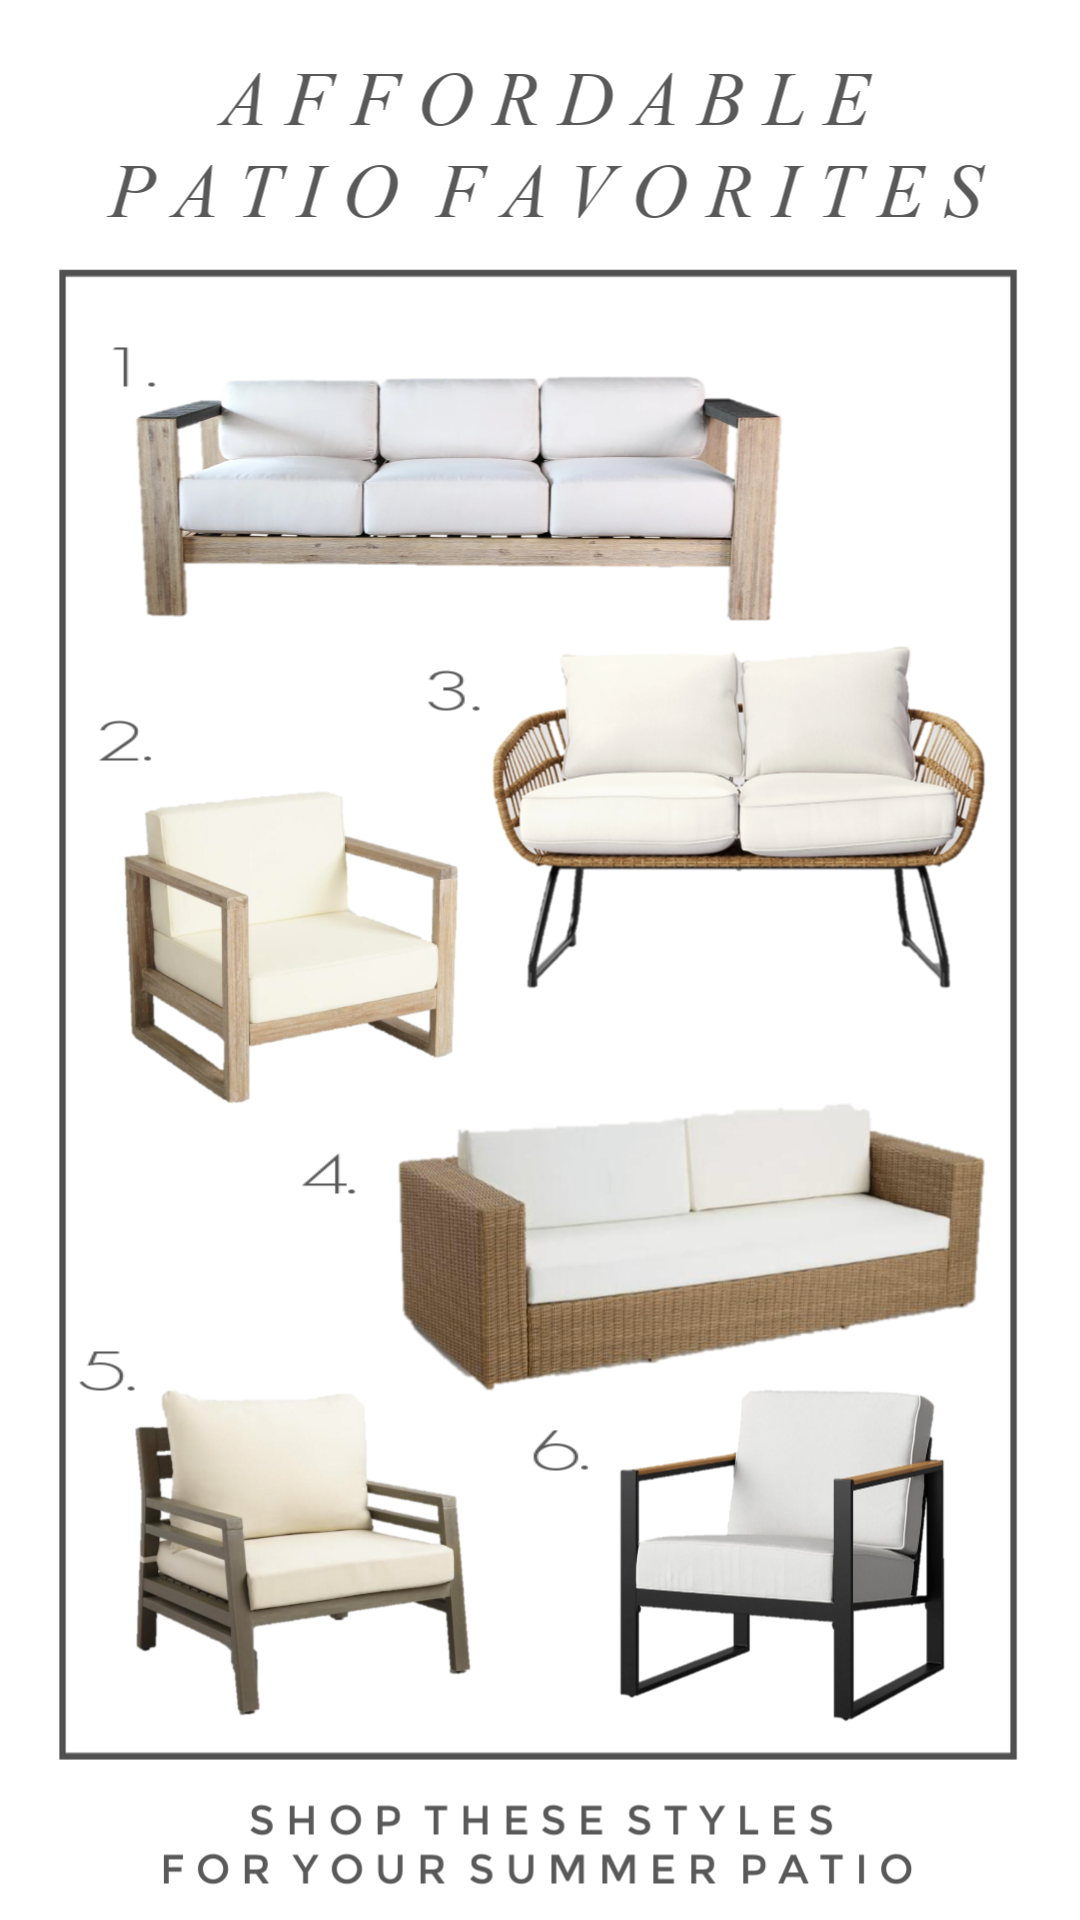 Affordable Patio Furniture Favorites.png